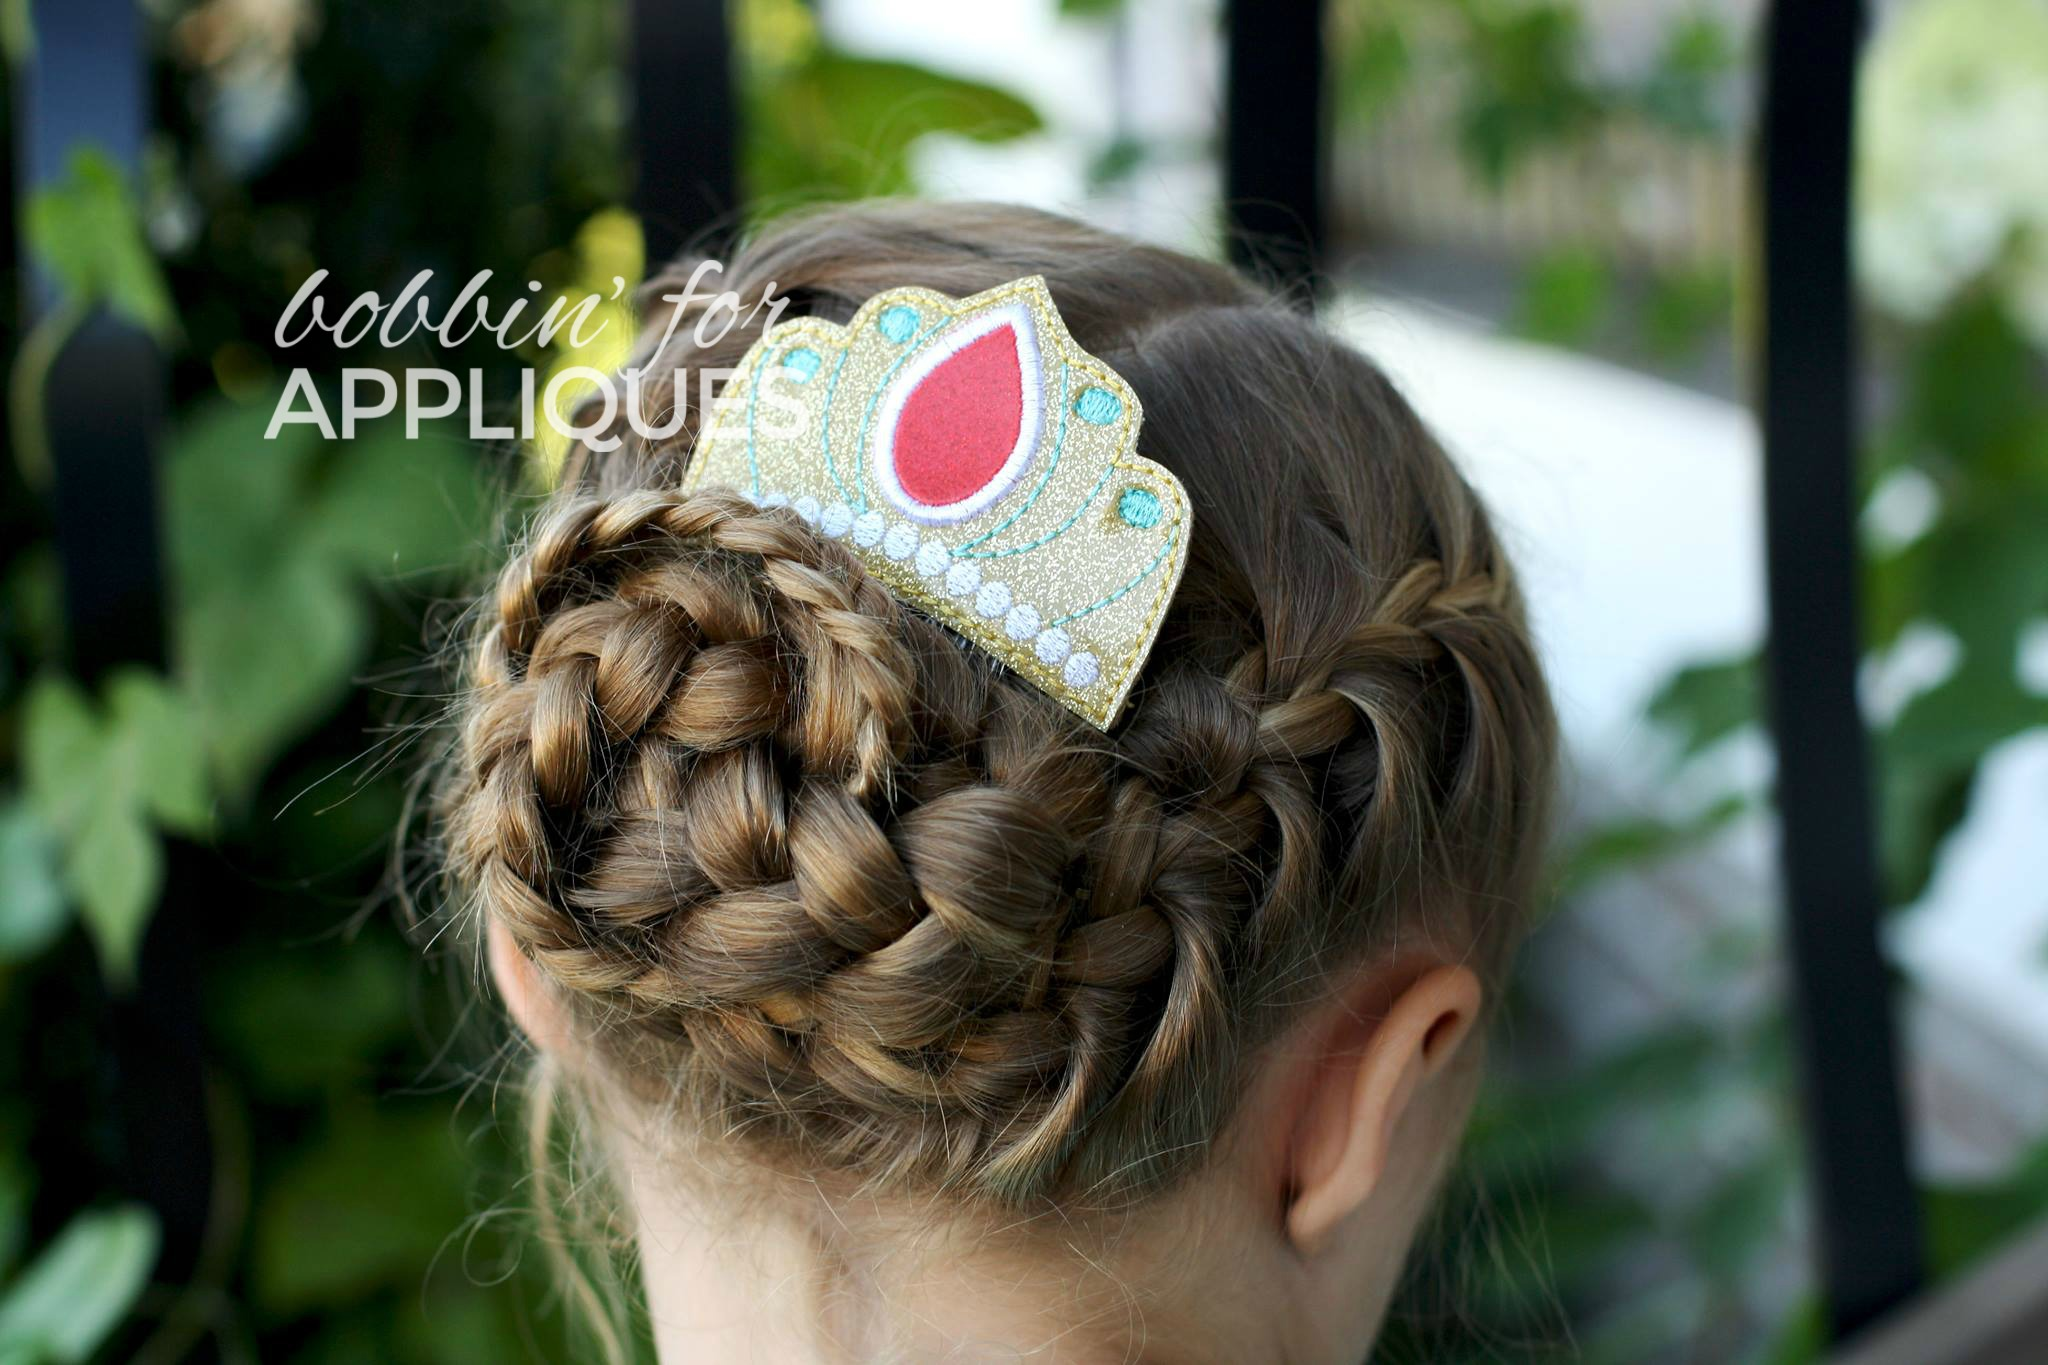 Princess of Avalor Inspired Comb Topper